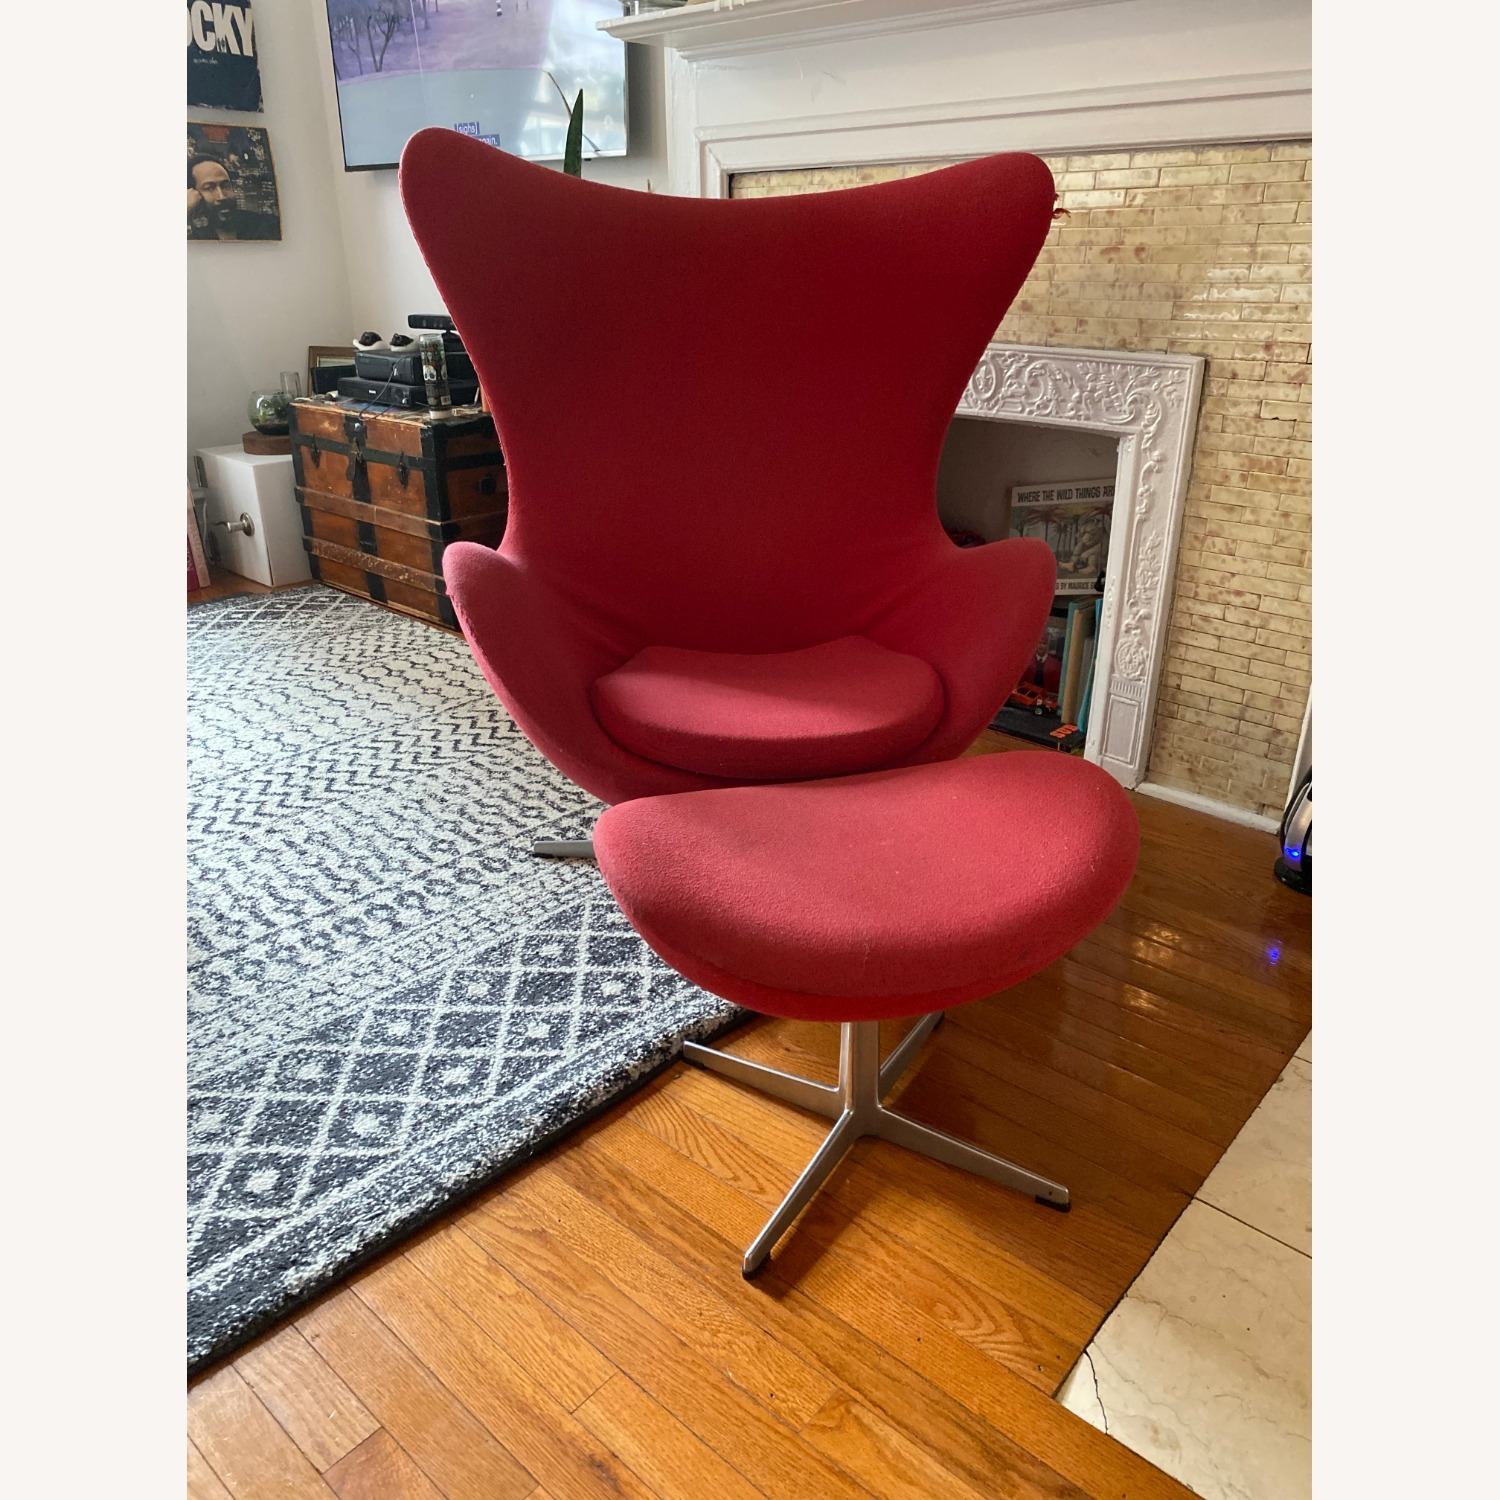 Fritz Hanson Egg Chair and footstool - image-1